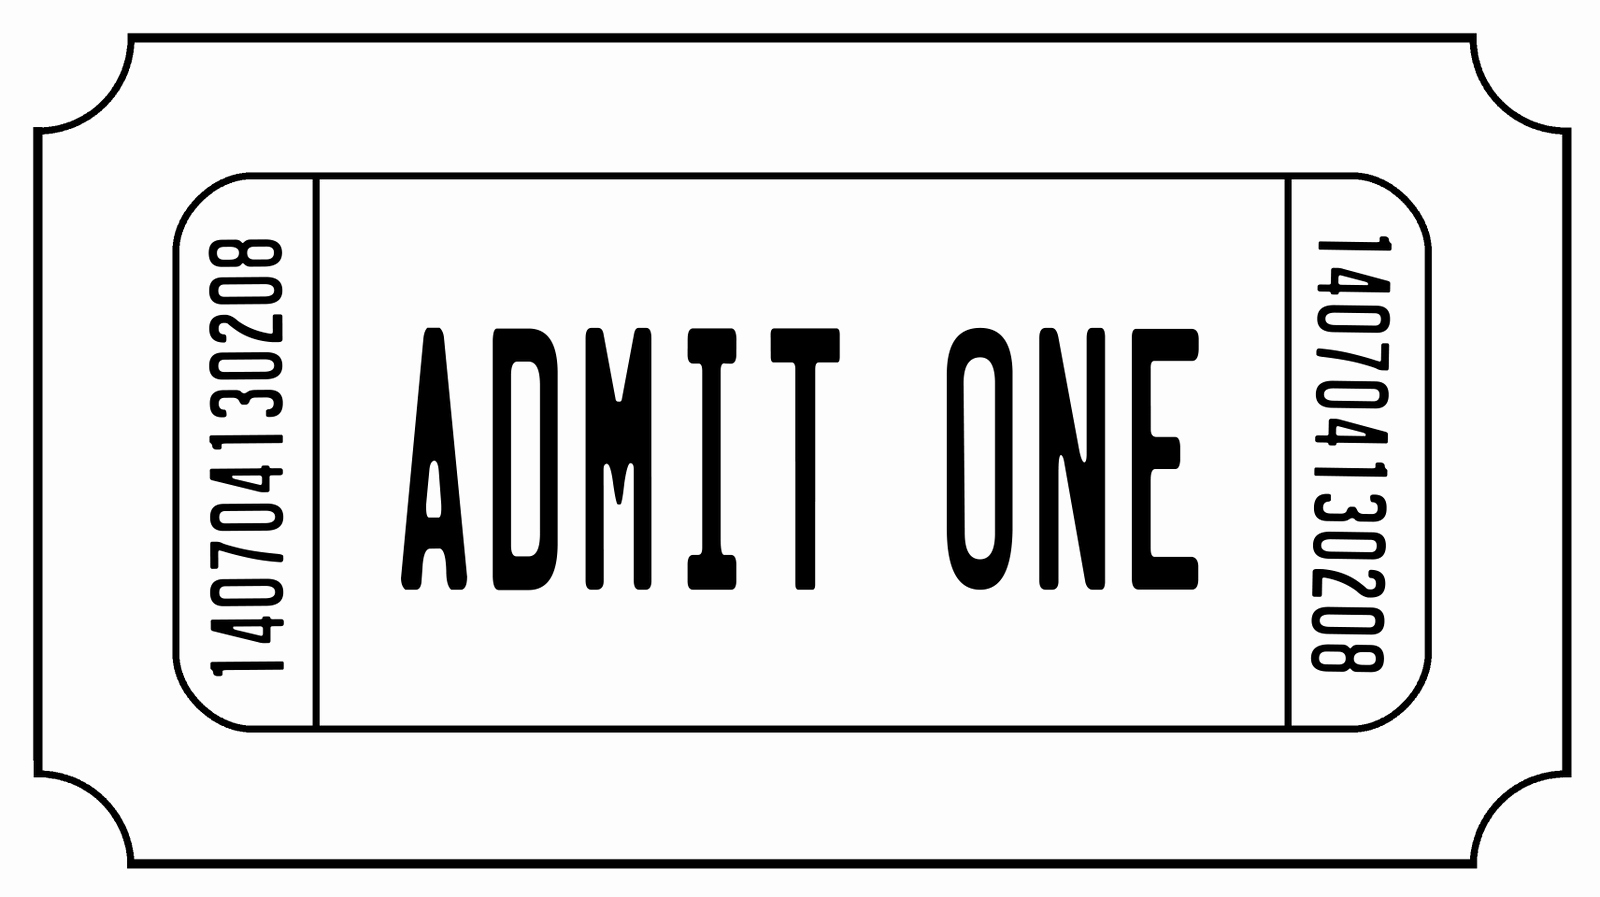 Admit One Ticket Template Printable Awesome Admit One Ticket Digi Stamp Digital Stamps